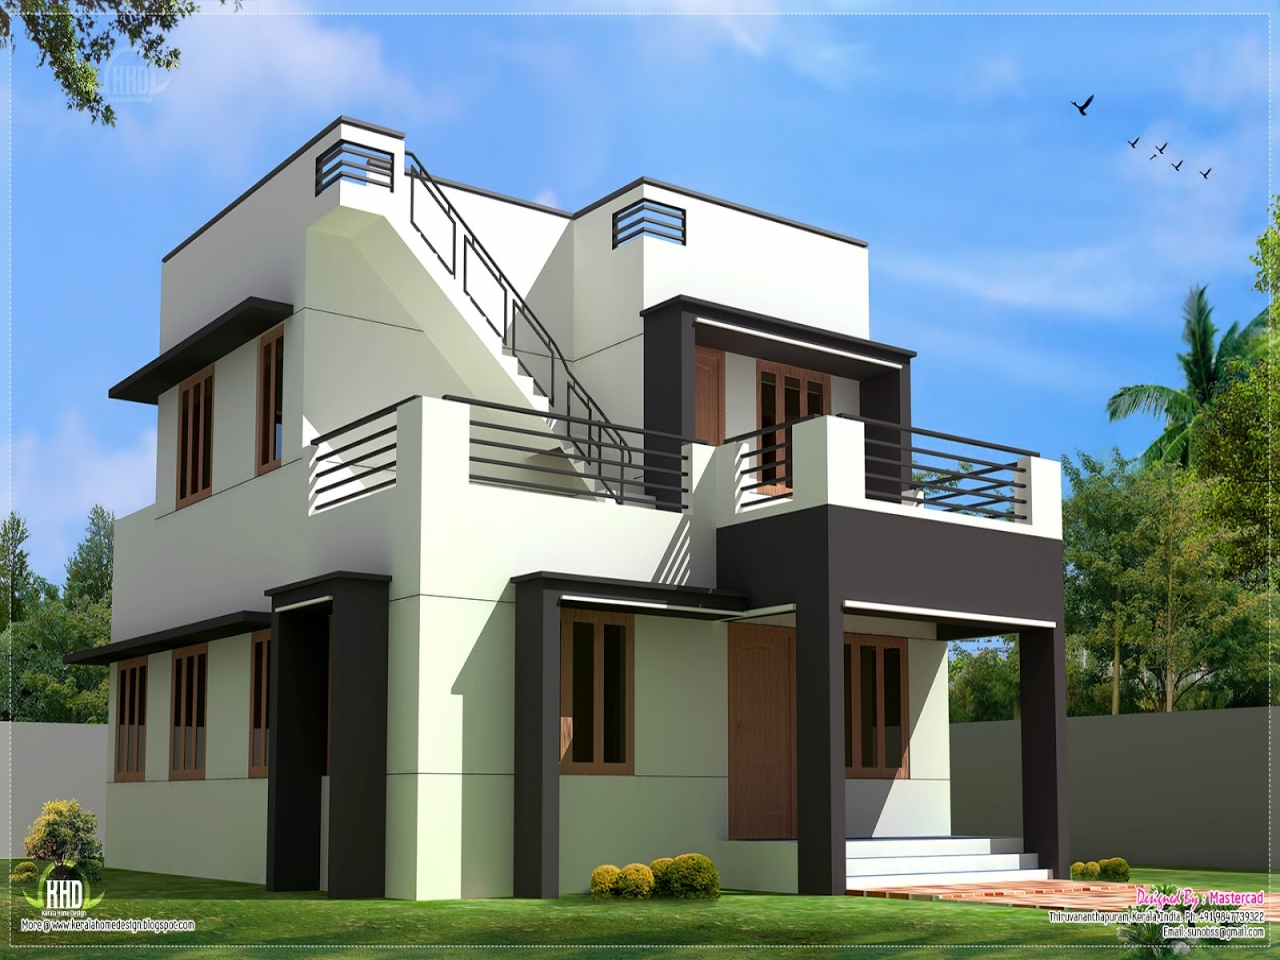 Collection 50 beautiful narrow house design for a 2 story for Beautiful two story homes